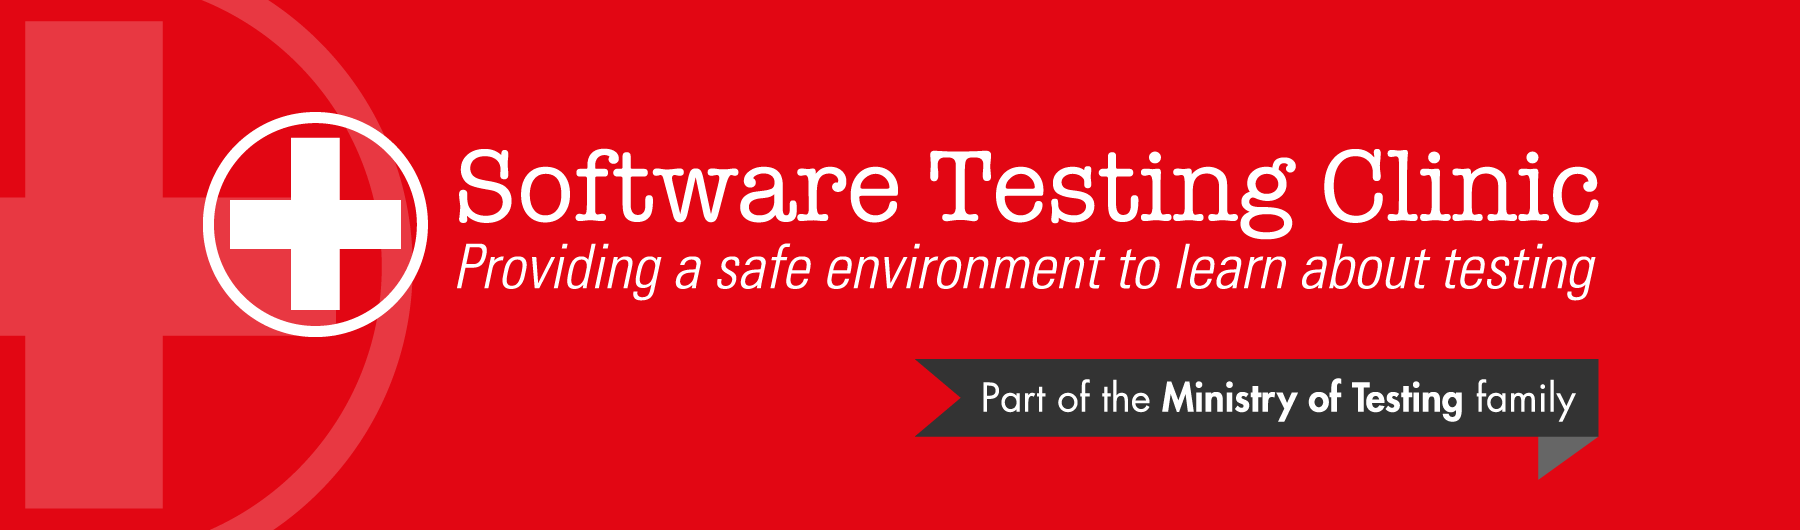 Software Testing Clinic Brighton